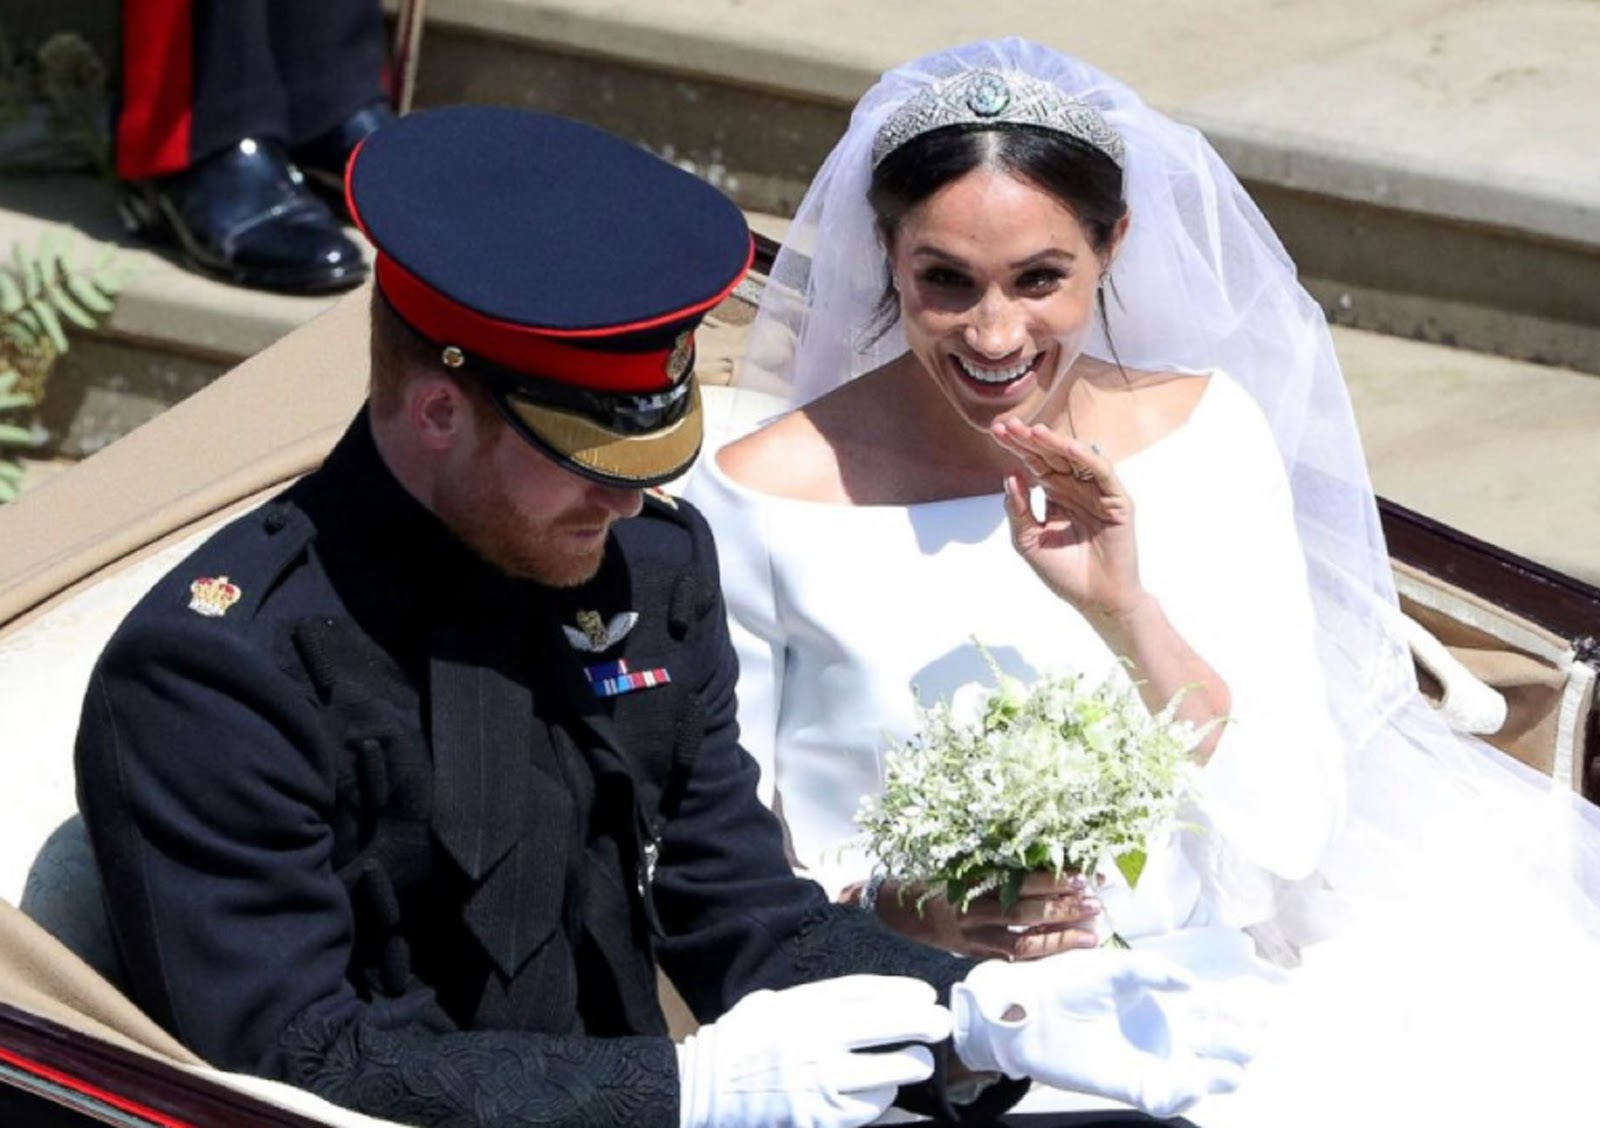 PRINCE HARRY, MEGHAN MARKLE 5